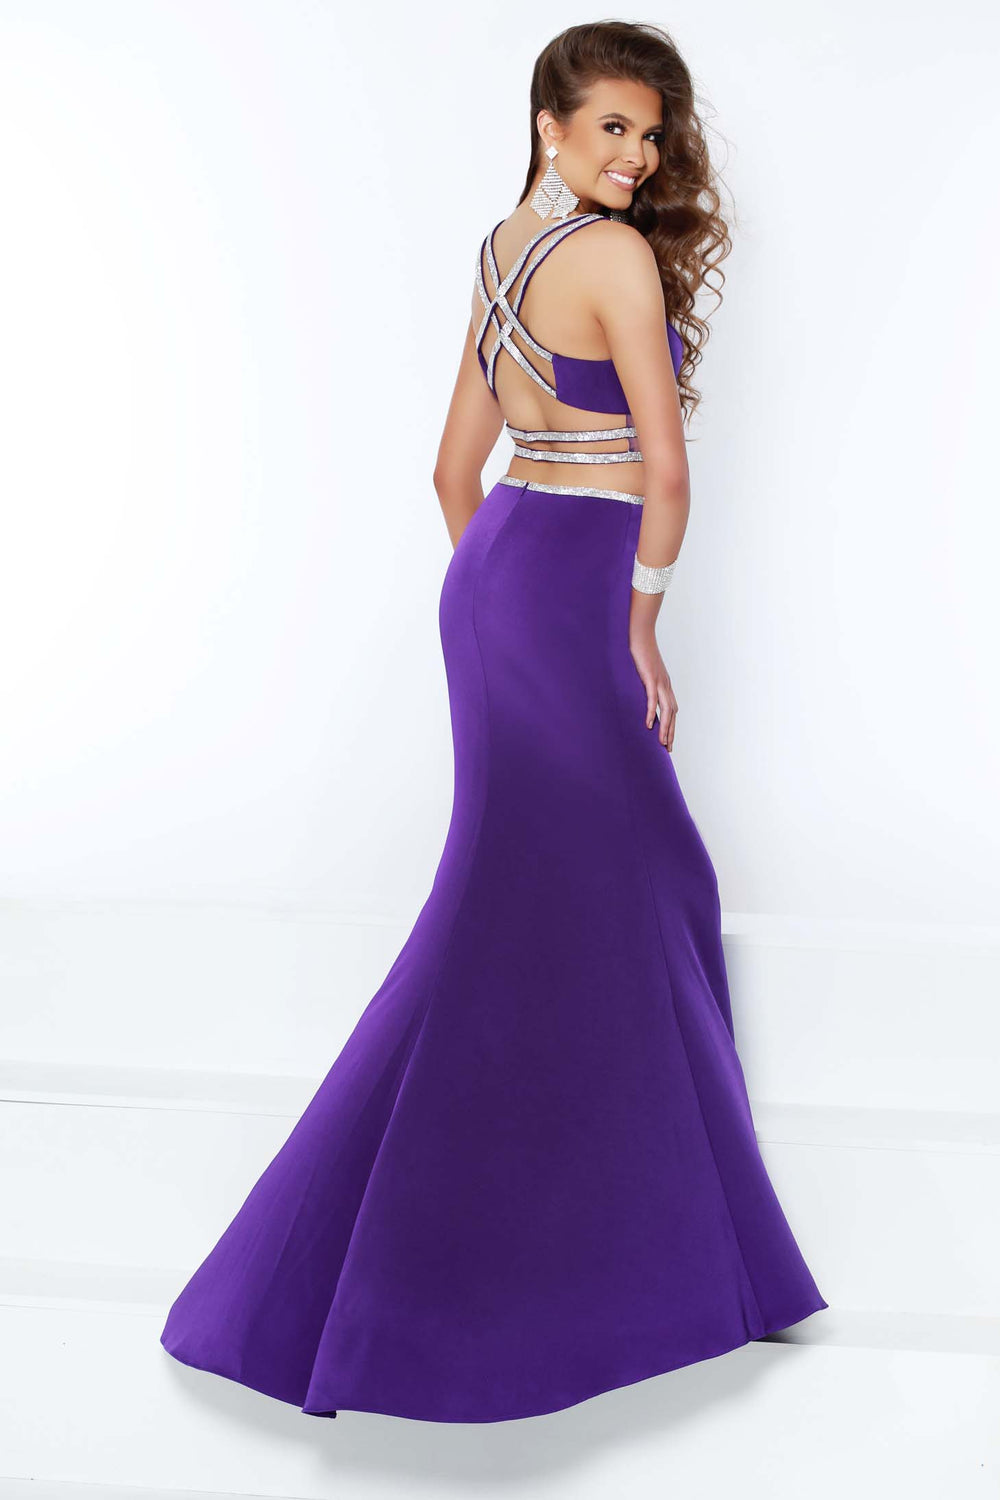 2Cute 91410 2 In 1 V-Neckline Designing Prom Dress